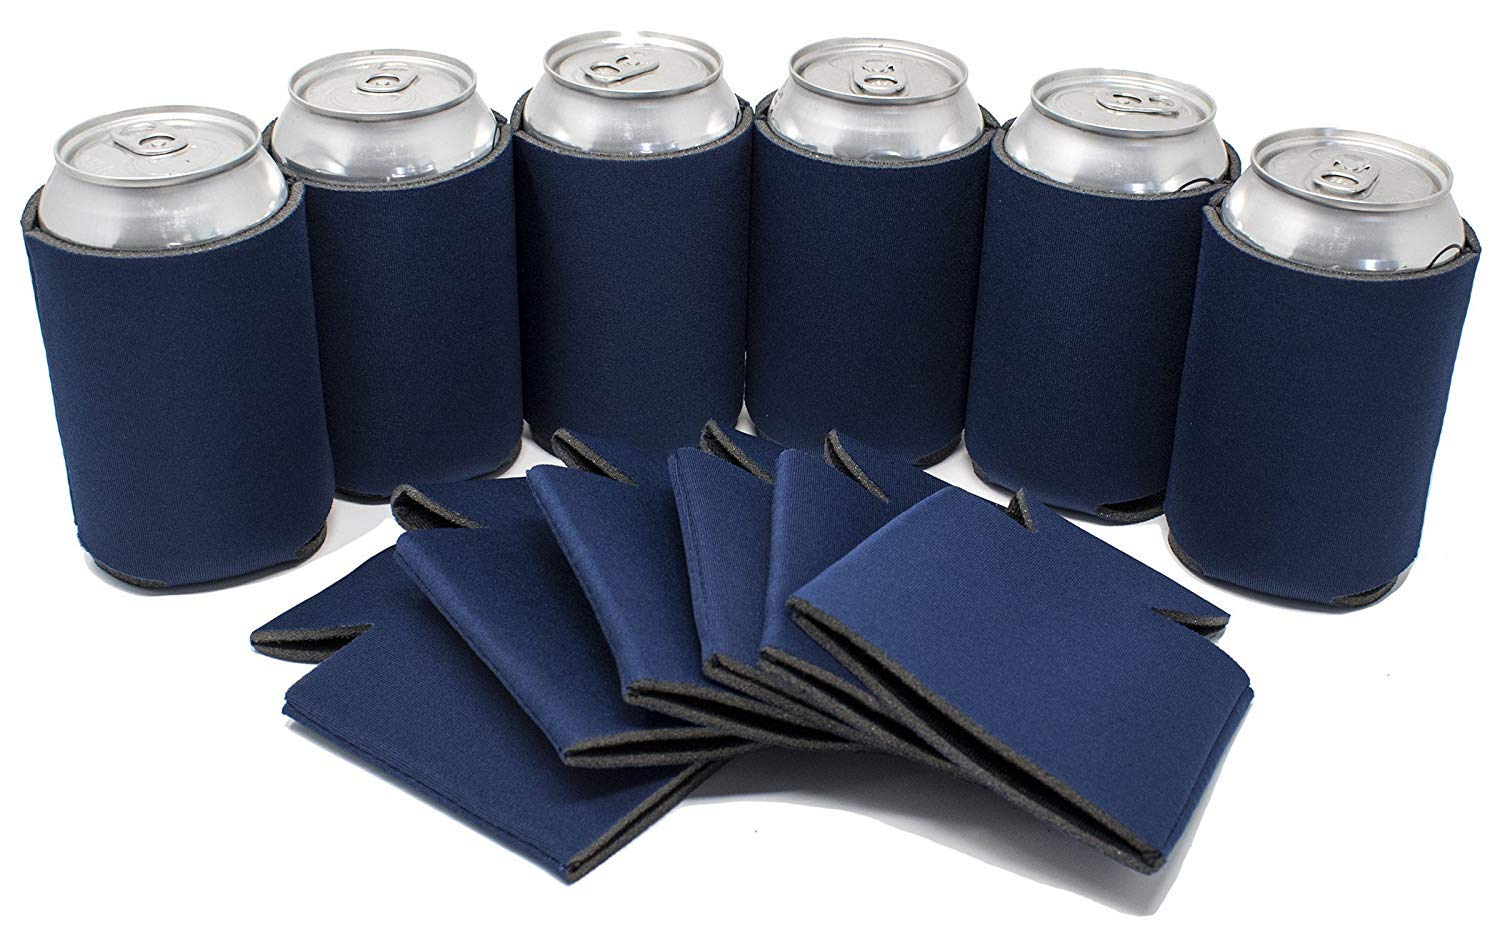 TahoeBay 12 Blank Beer Can Coolers, Plain Bulk Collapsible Soda Cover Coolies, DIY Personalized Sublimation Sleeves for Weddings, Bachelorette Parties, Funny HTV Party Favors (Navy Blue, 12)